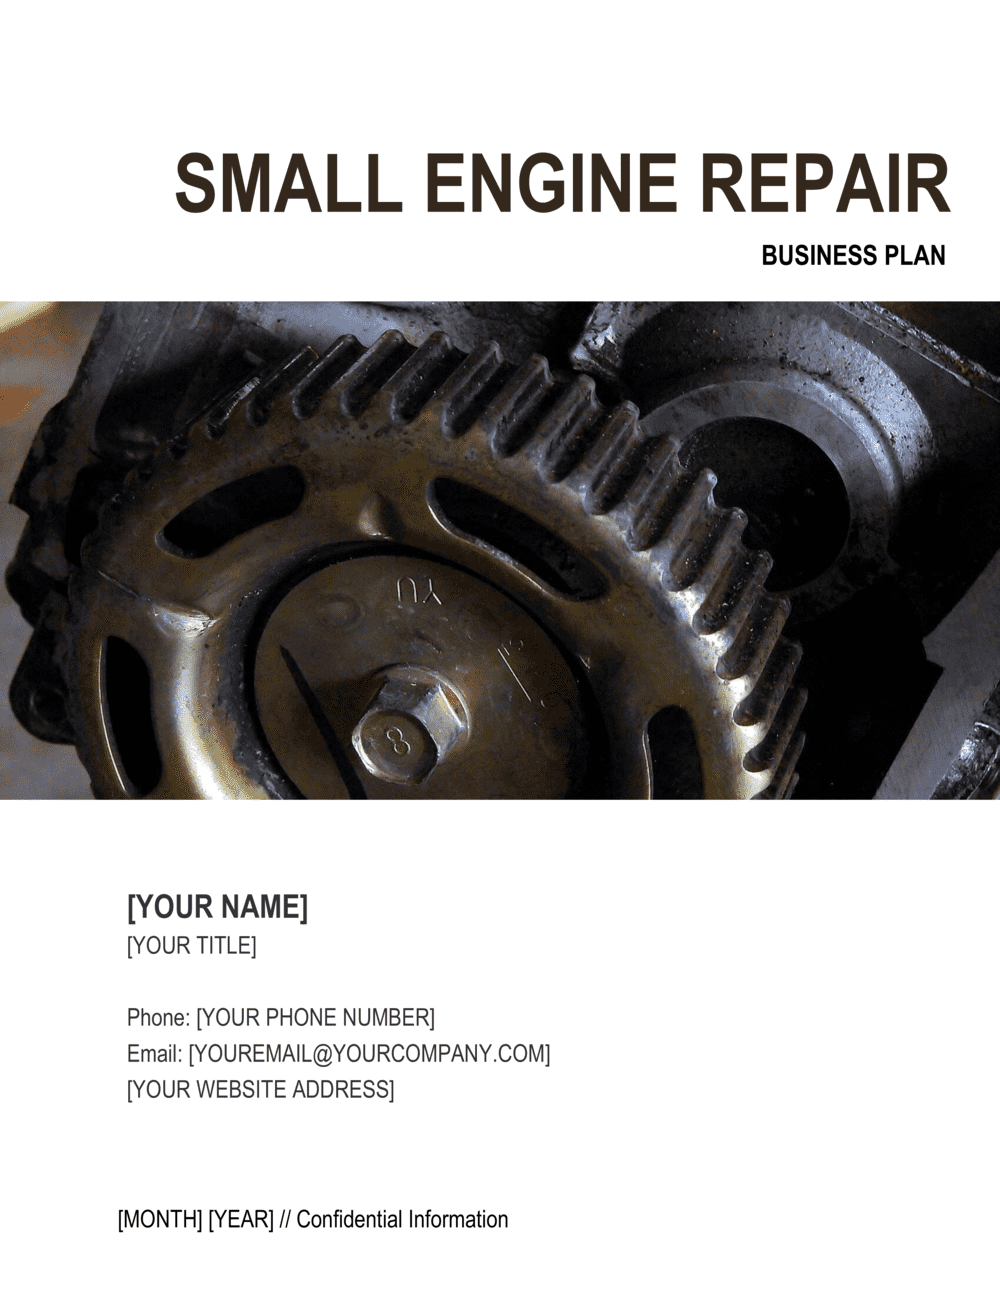 Business-in-a-Box's Small Engine Repair Business Plan Template